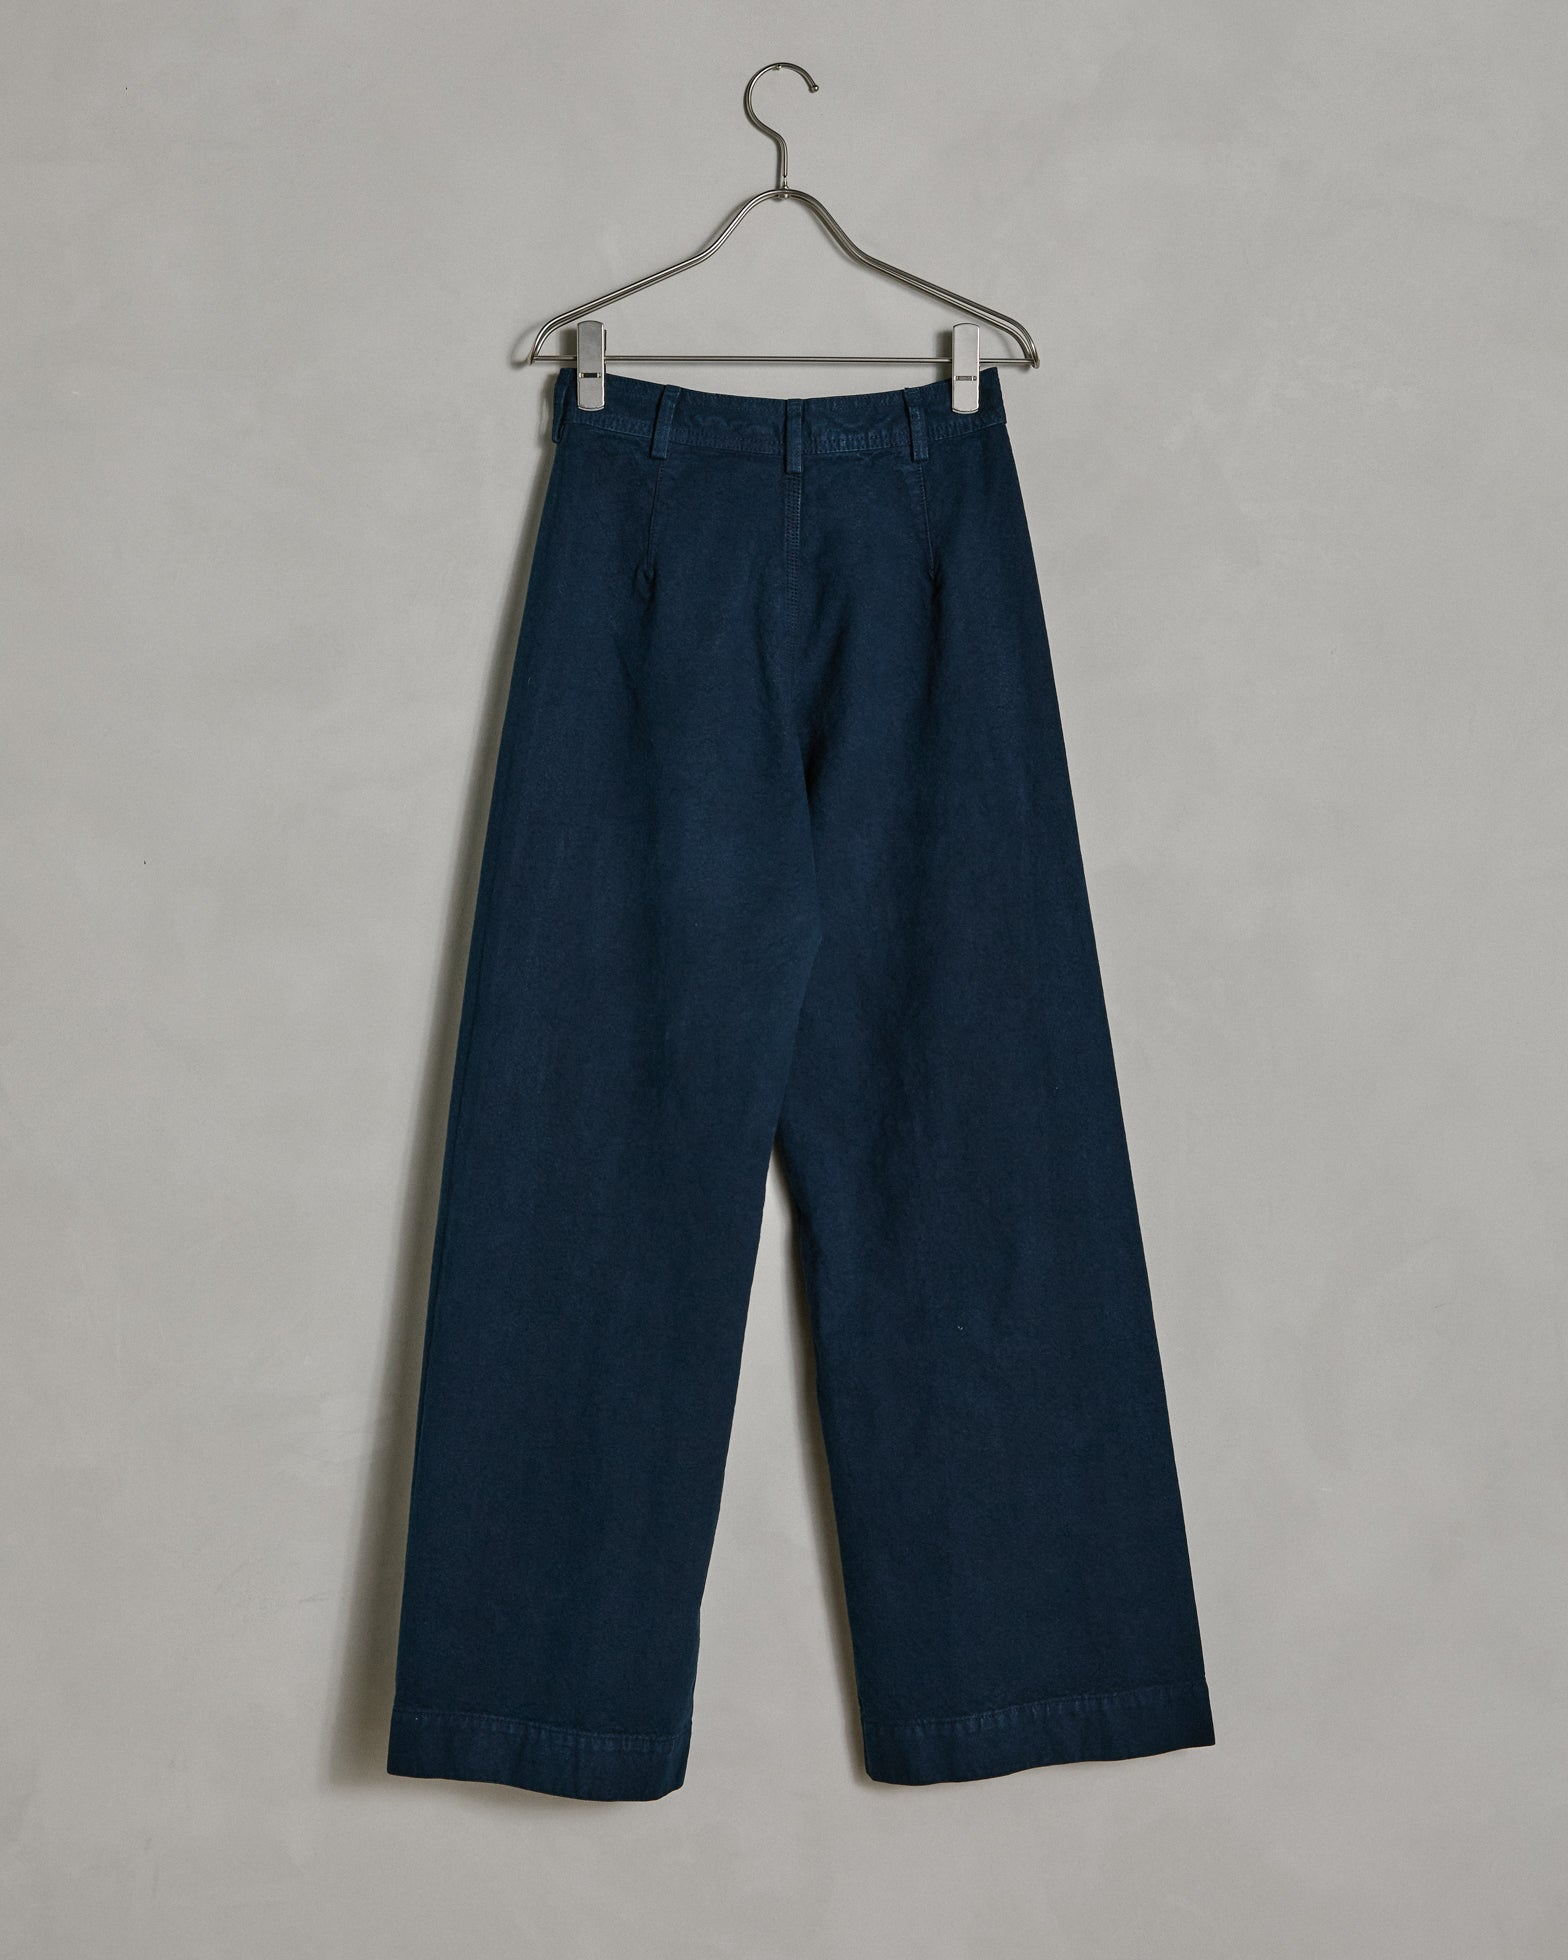 Sailor Pants in Midnight